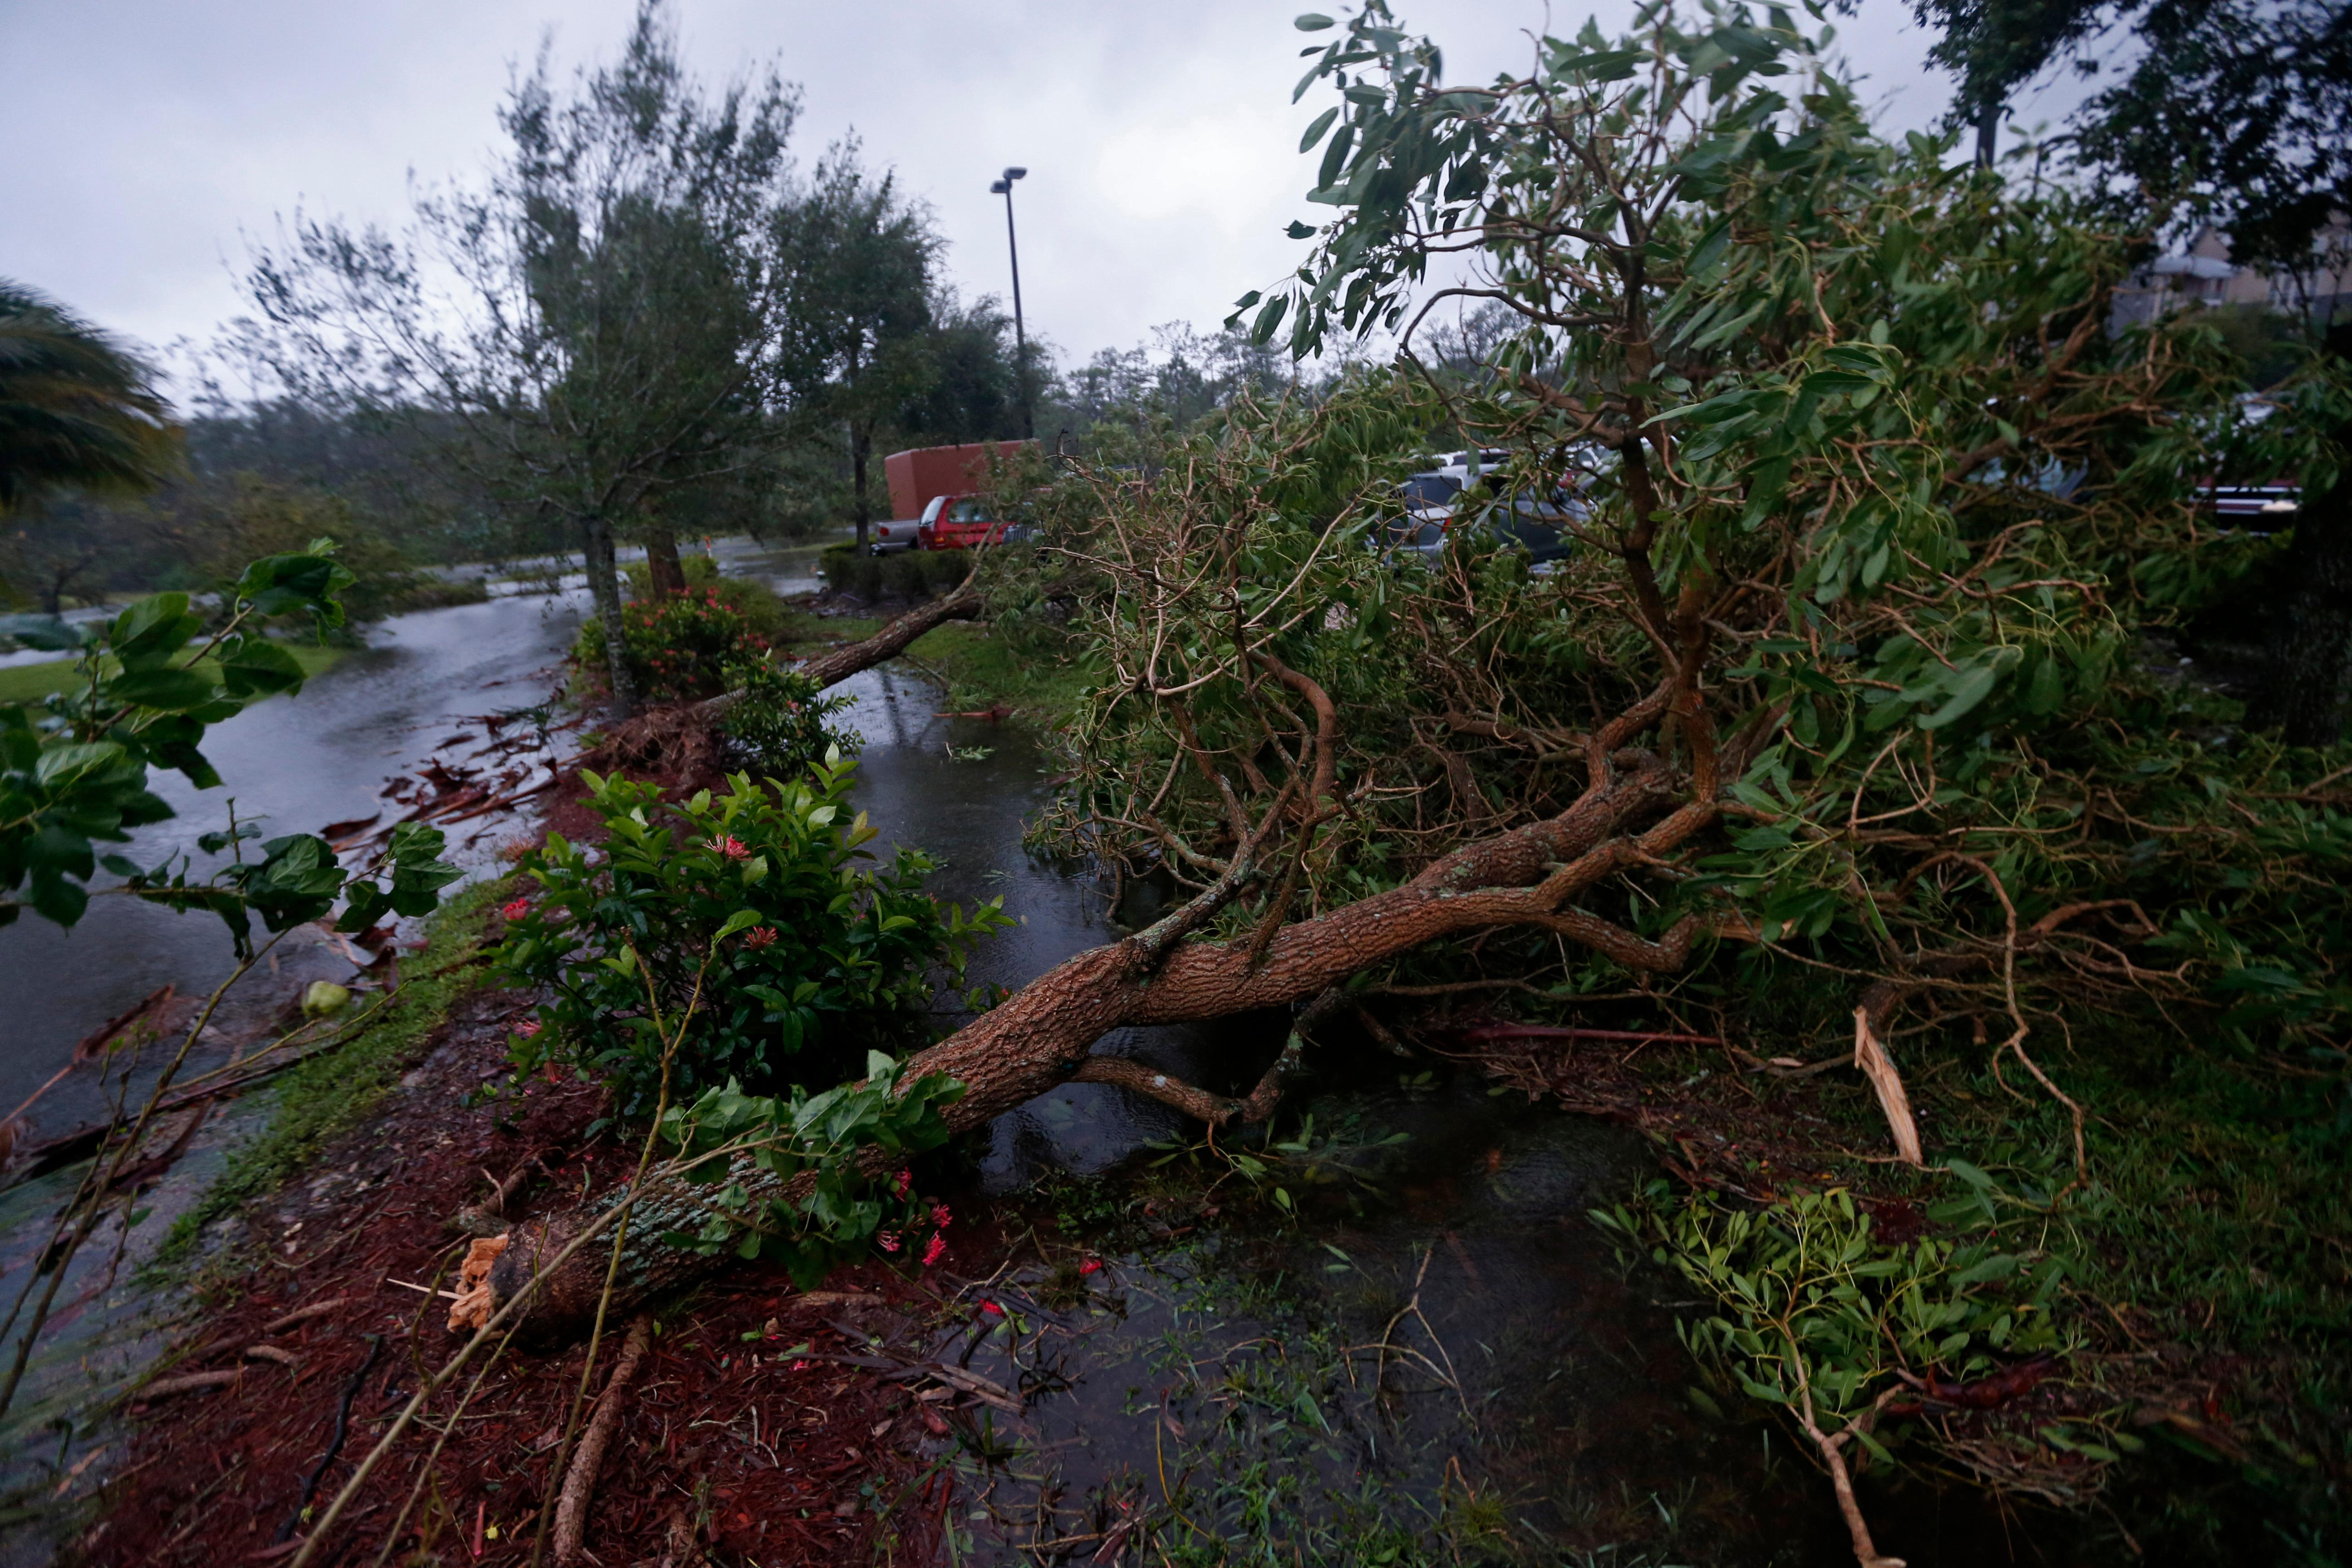 Fallen trees are seen during Hurricane Irma, in Fort Myers, Fla., Sunday, Sept. 10, 2017. Hurricane Irma set all sorts of records for brute strength before crashing into Florida, flattening islands in the Caribbean and swamping the Florida Keys. (AP Photo/Gerald Herbert)